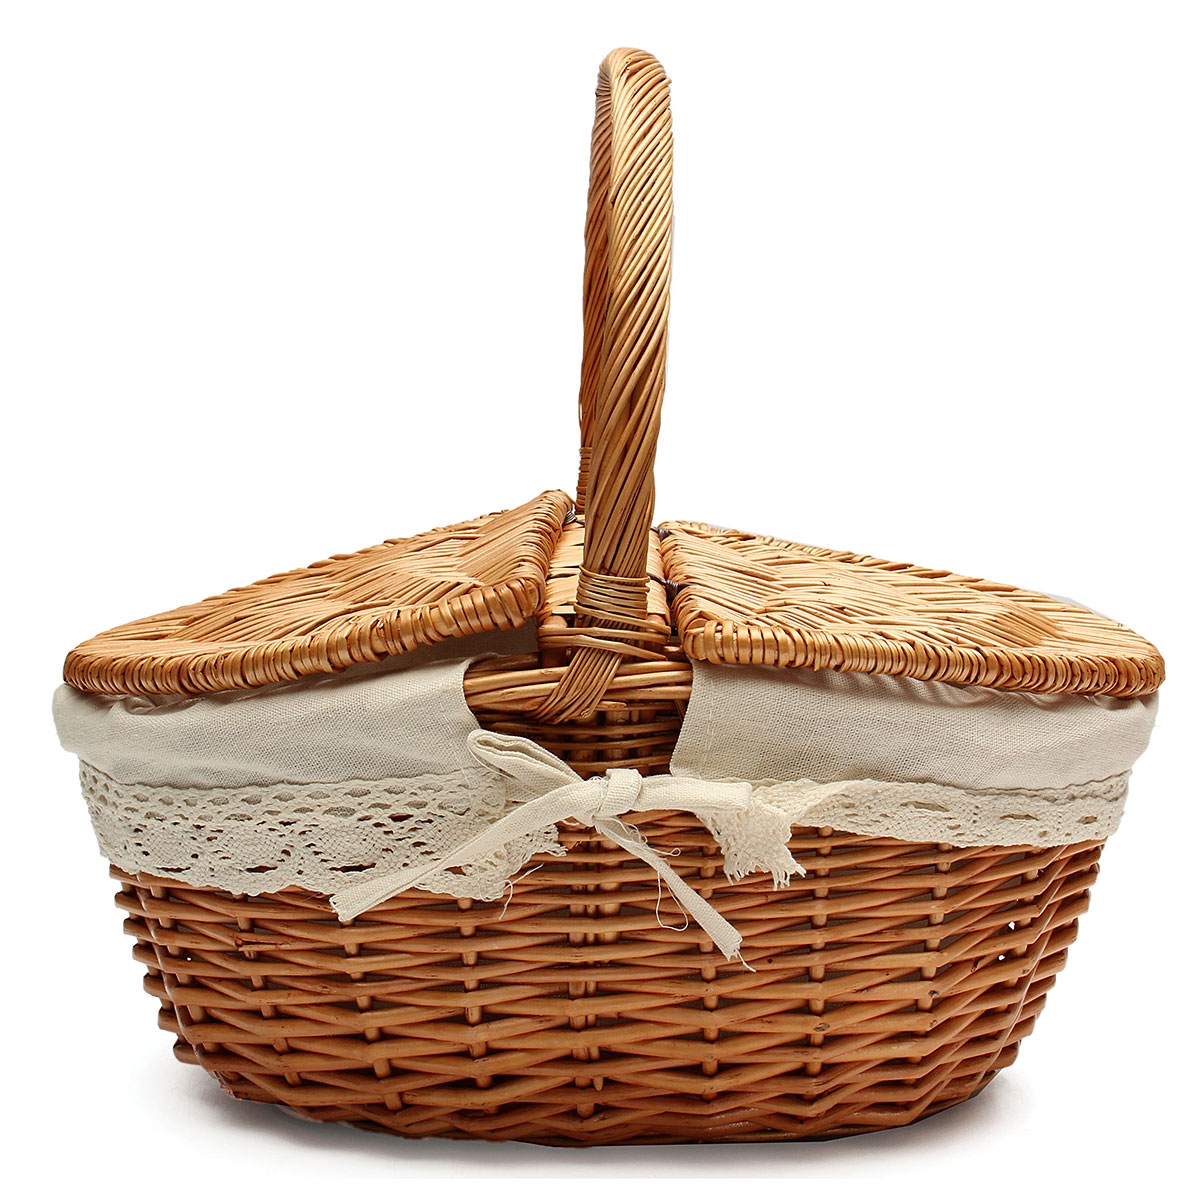 Meigar Wicker Storage Basket DASARA Up to 10KG Willow Basket Picnic Basket with Red Gingham Liner Lid and Handle Shopping Hamper